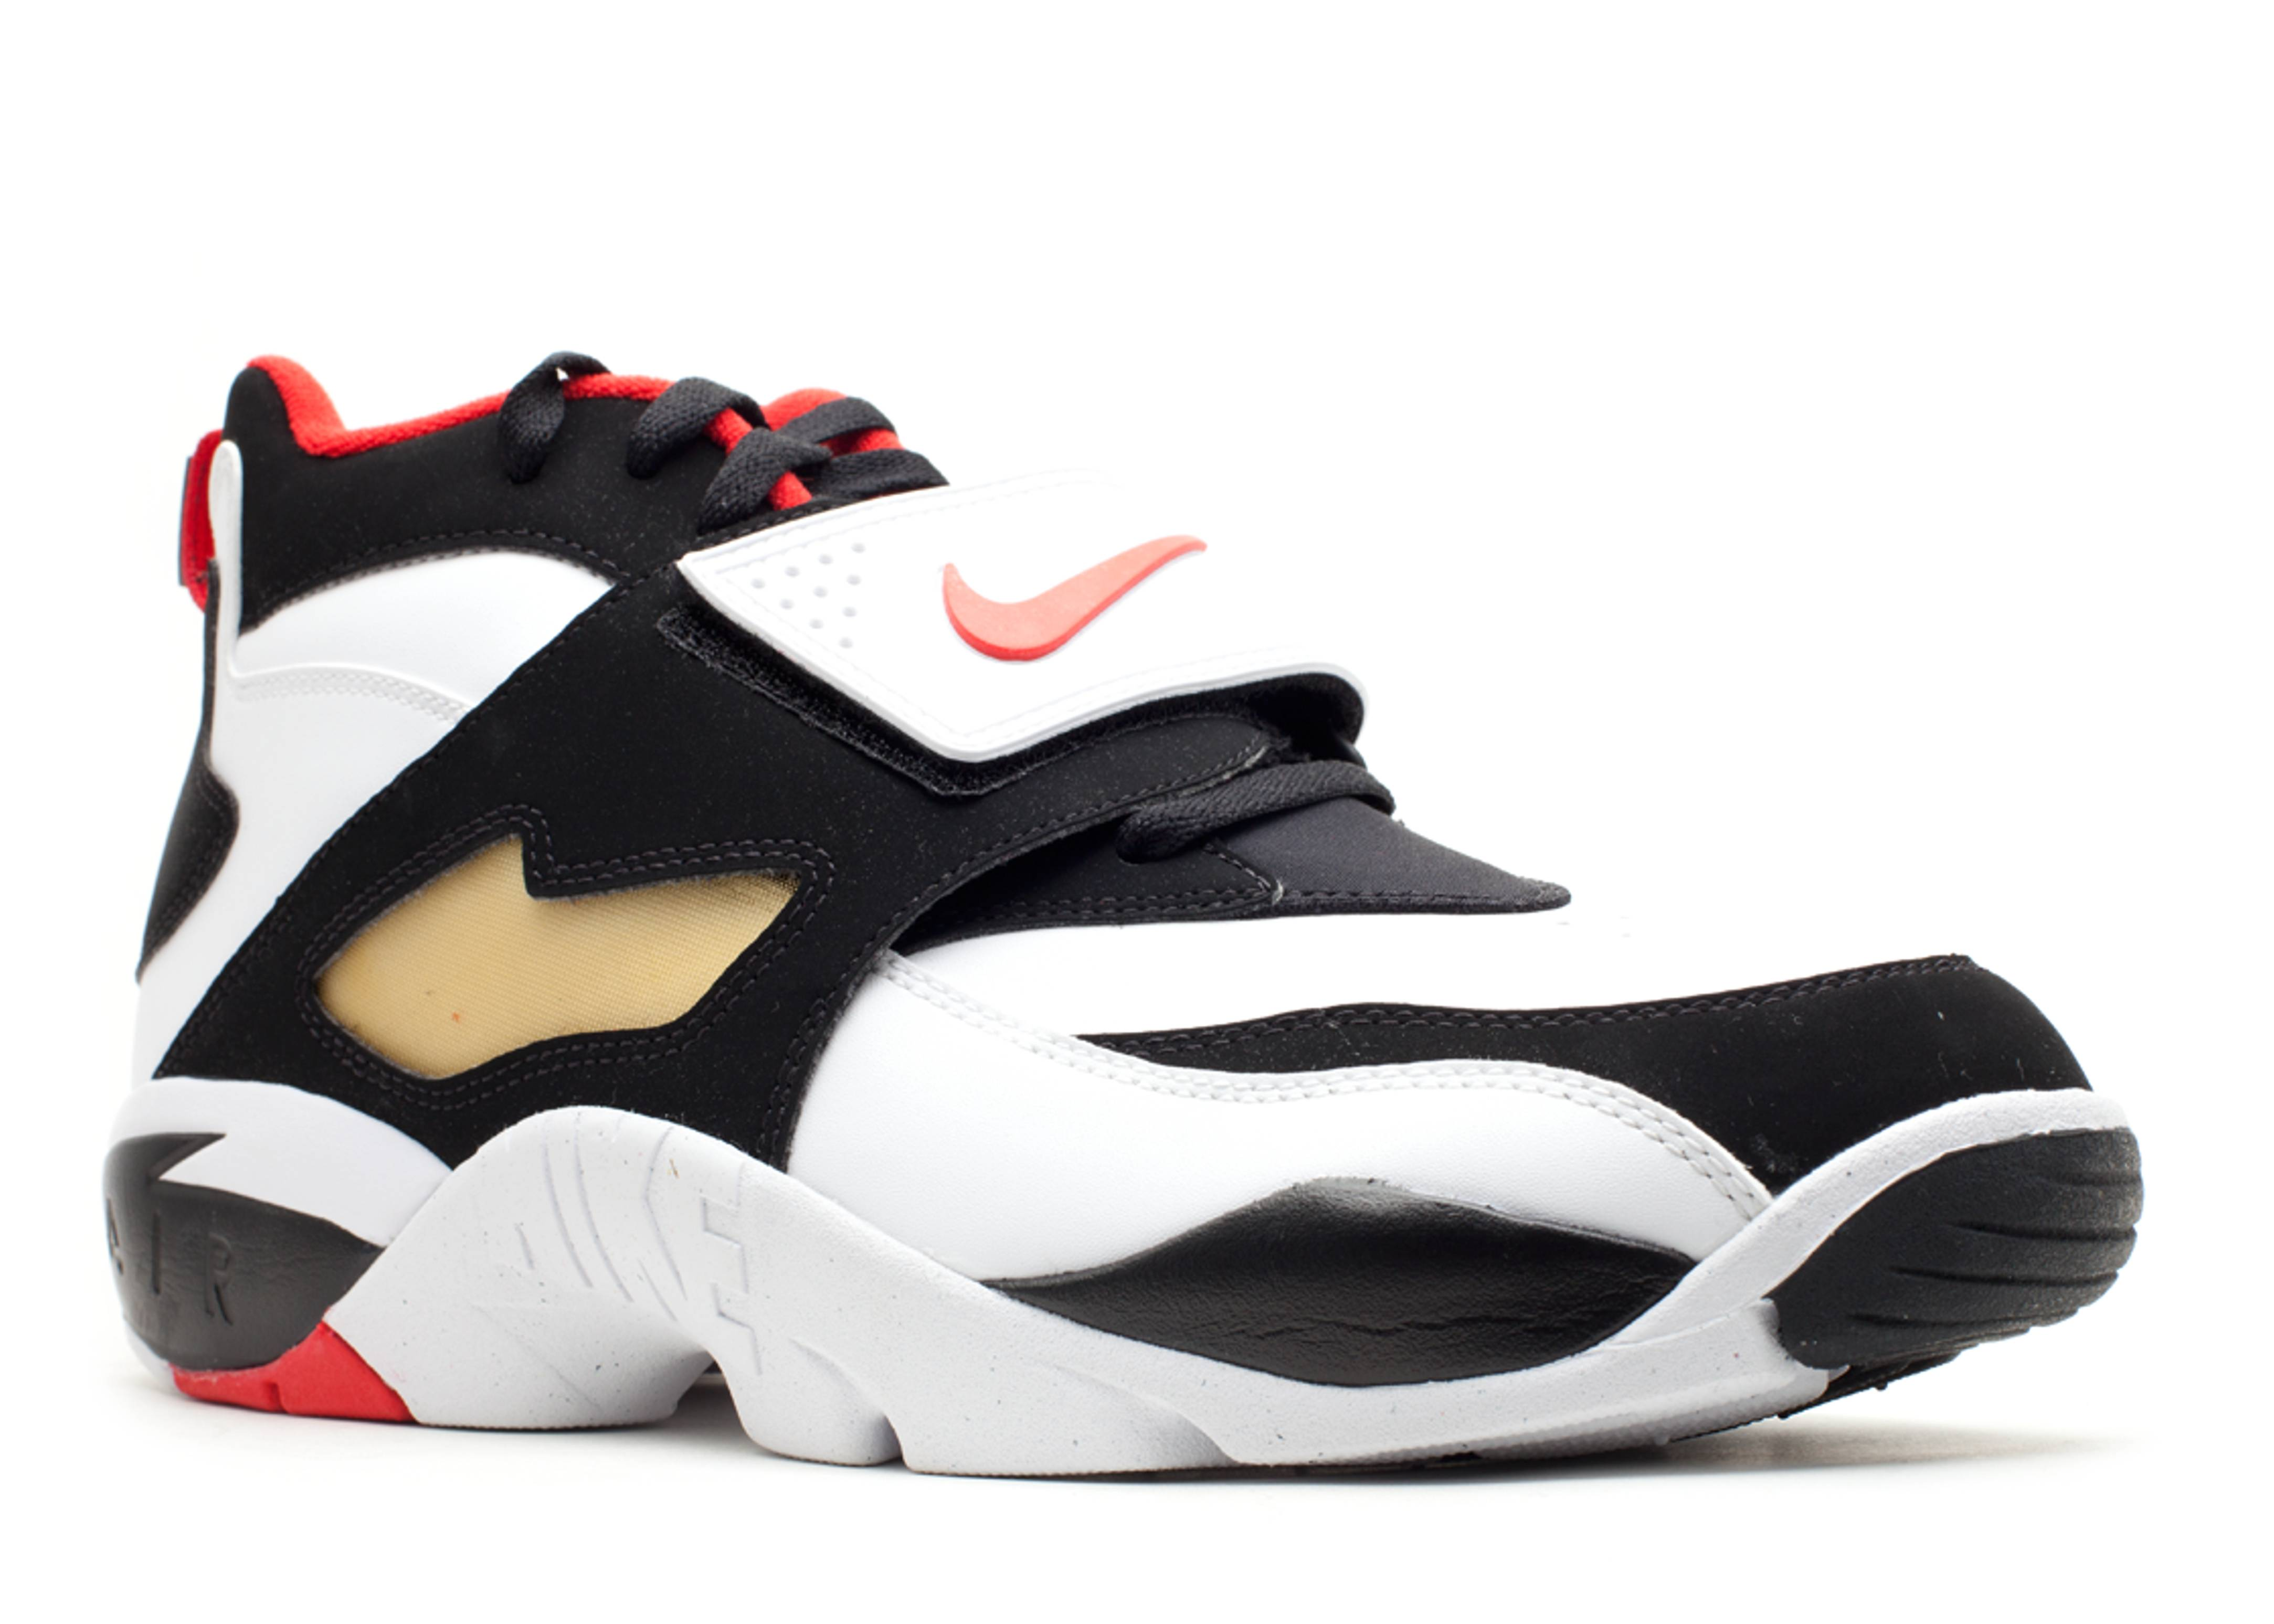 26f8e6e5dbc Nike Air Diamond Turf Colors - Musée des impressionnismes Giverny